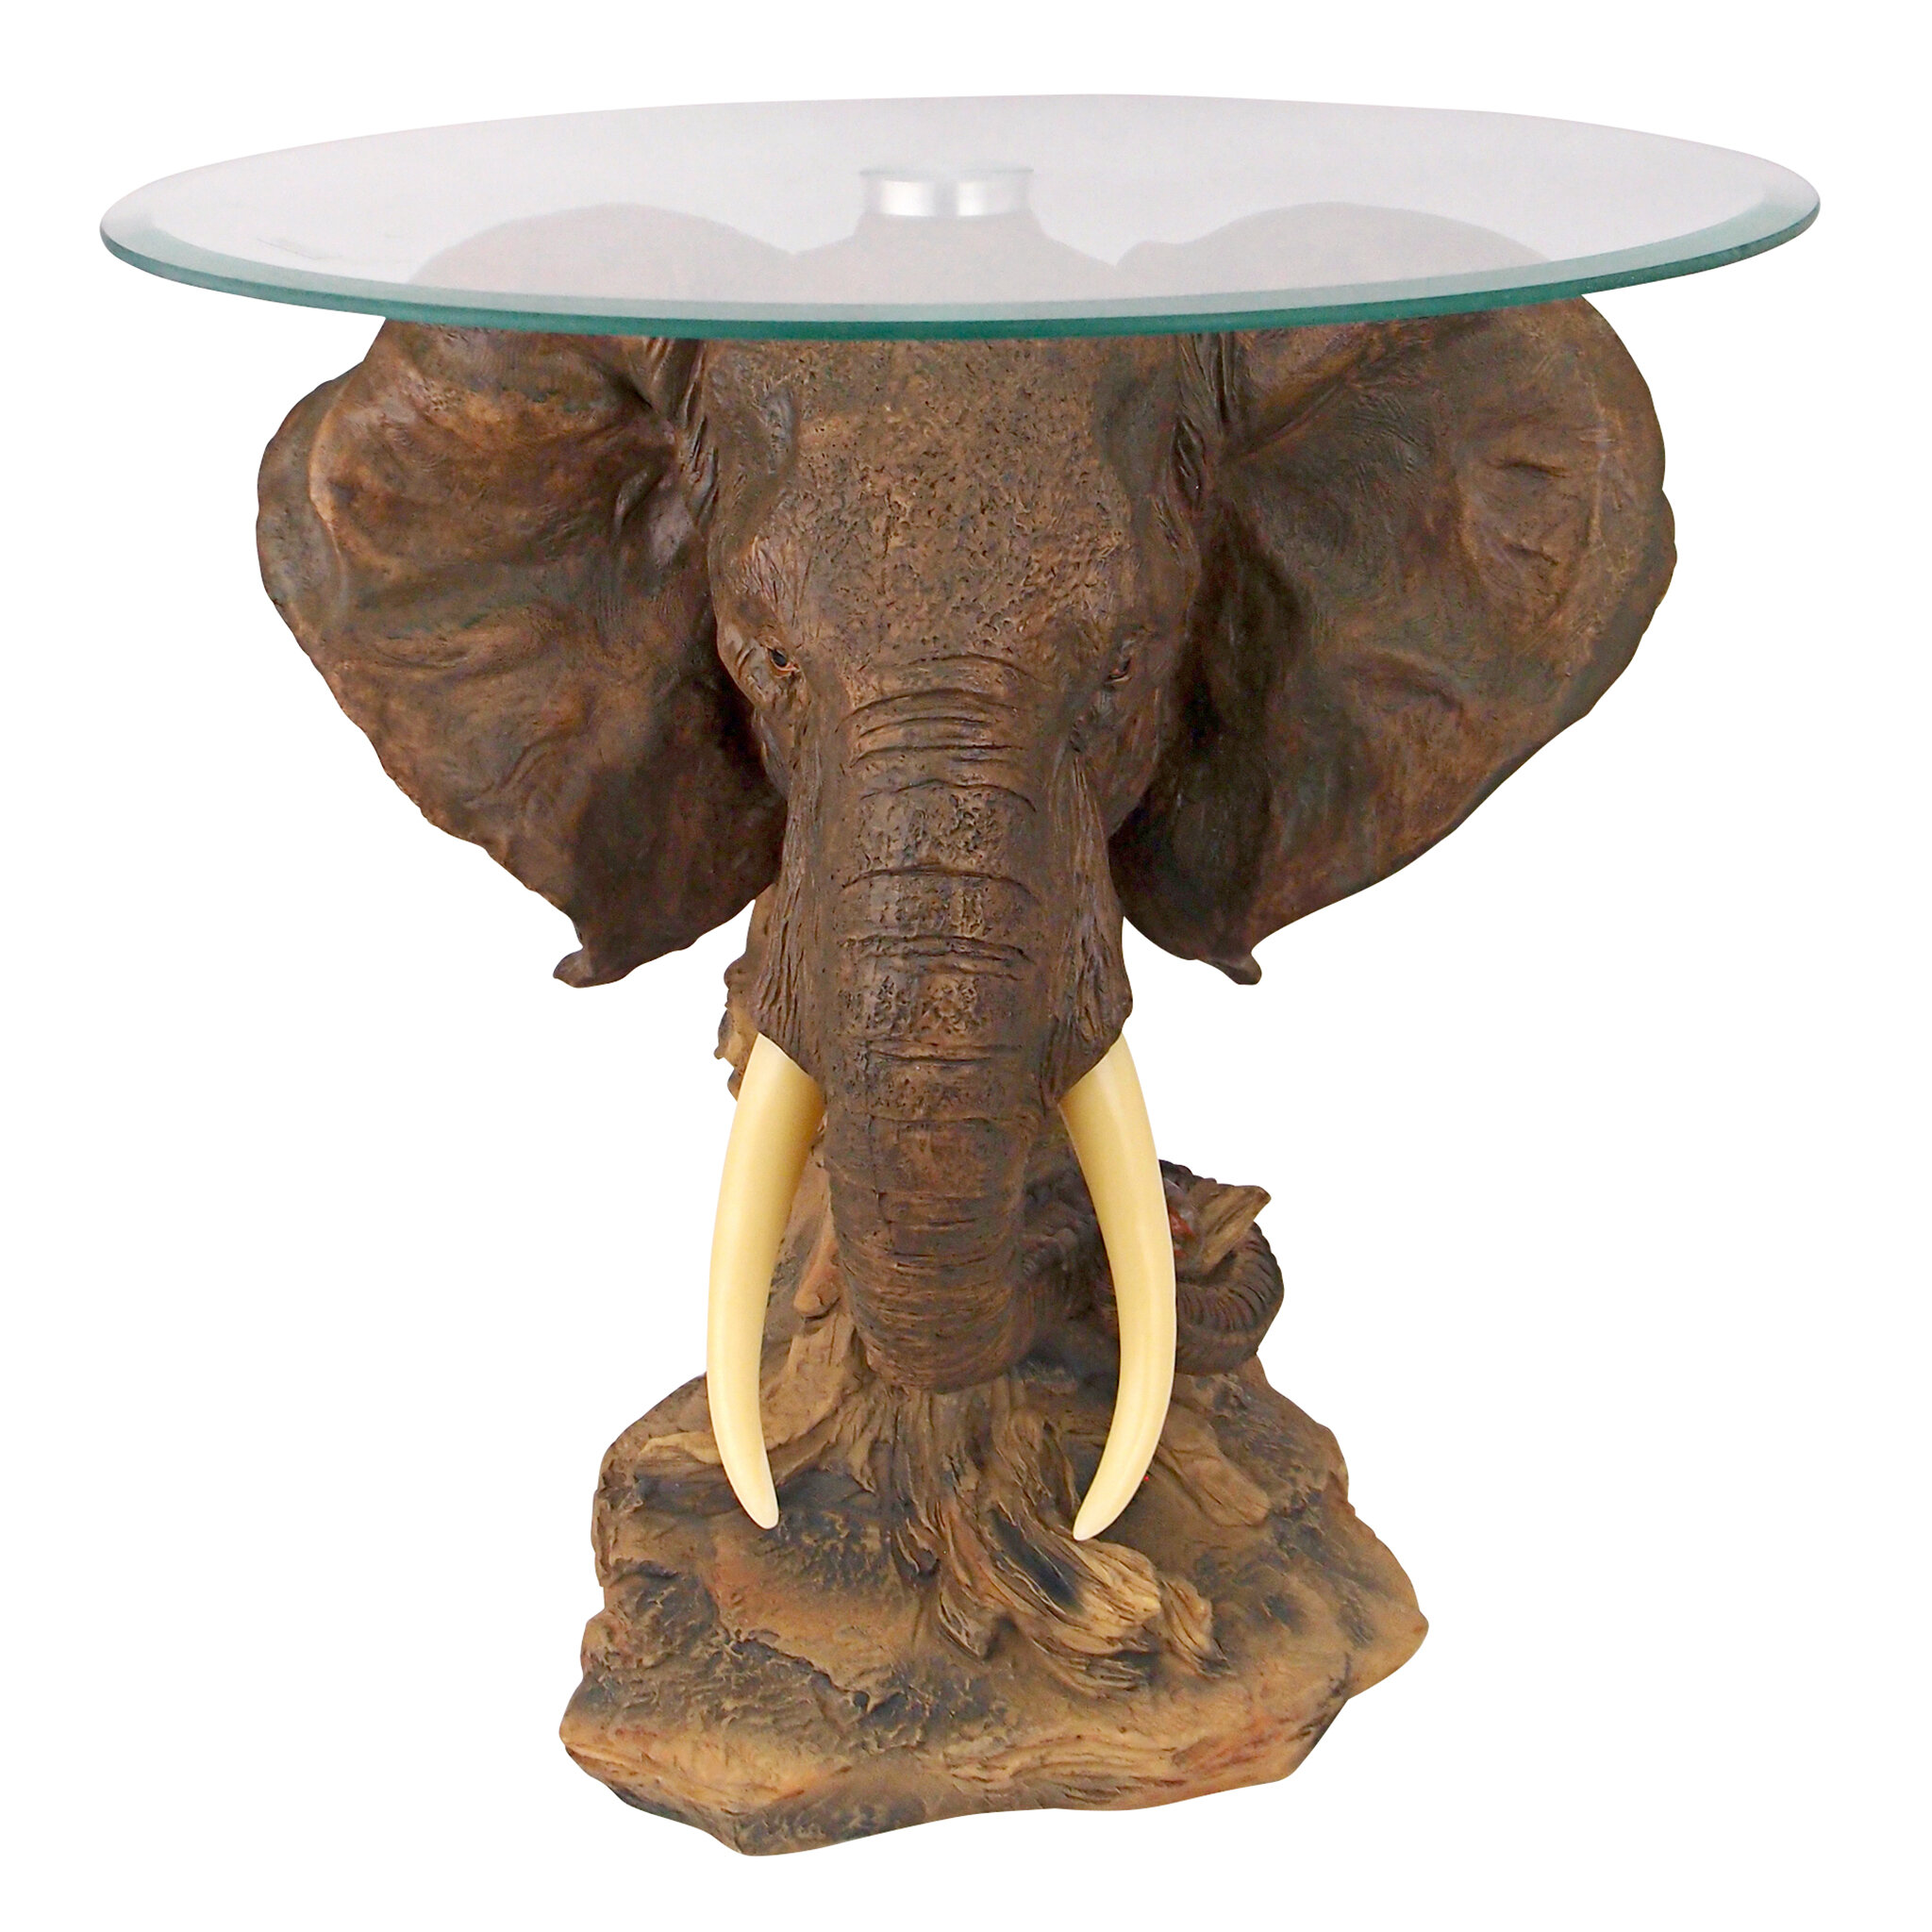 Design Toscano Lord Earl Houghton s Trophy Elephant Coffee Table